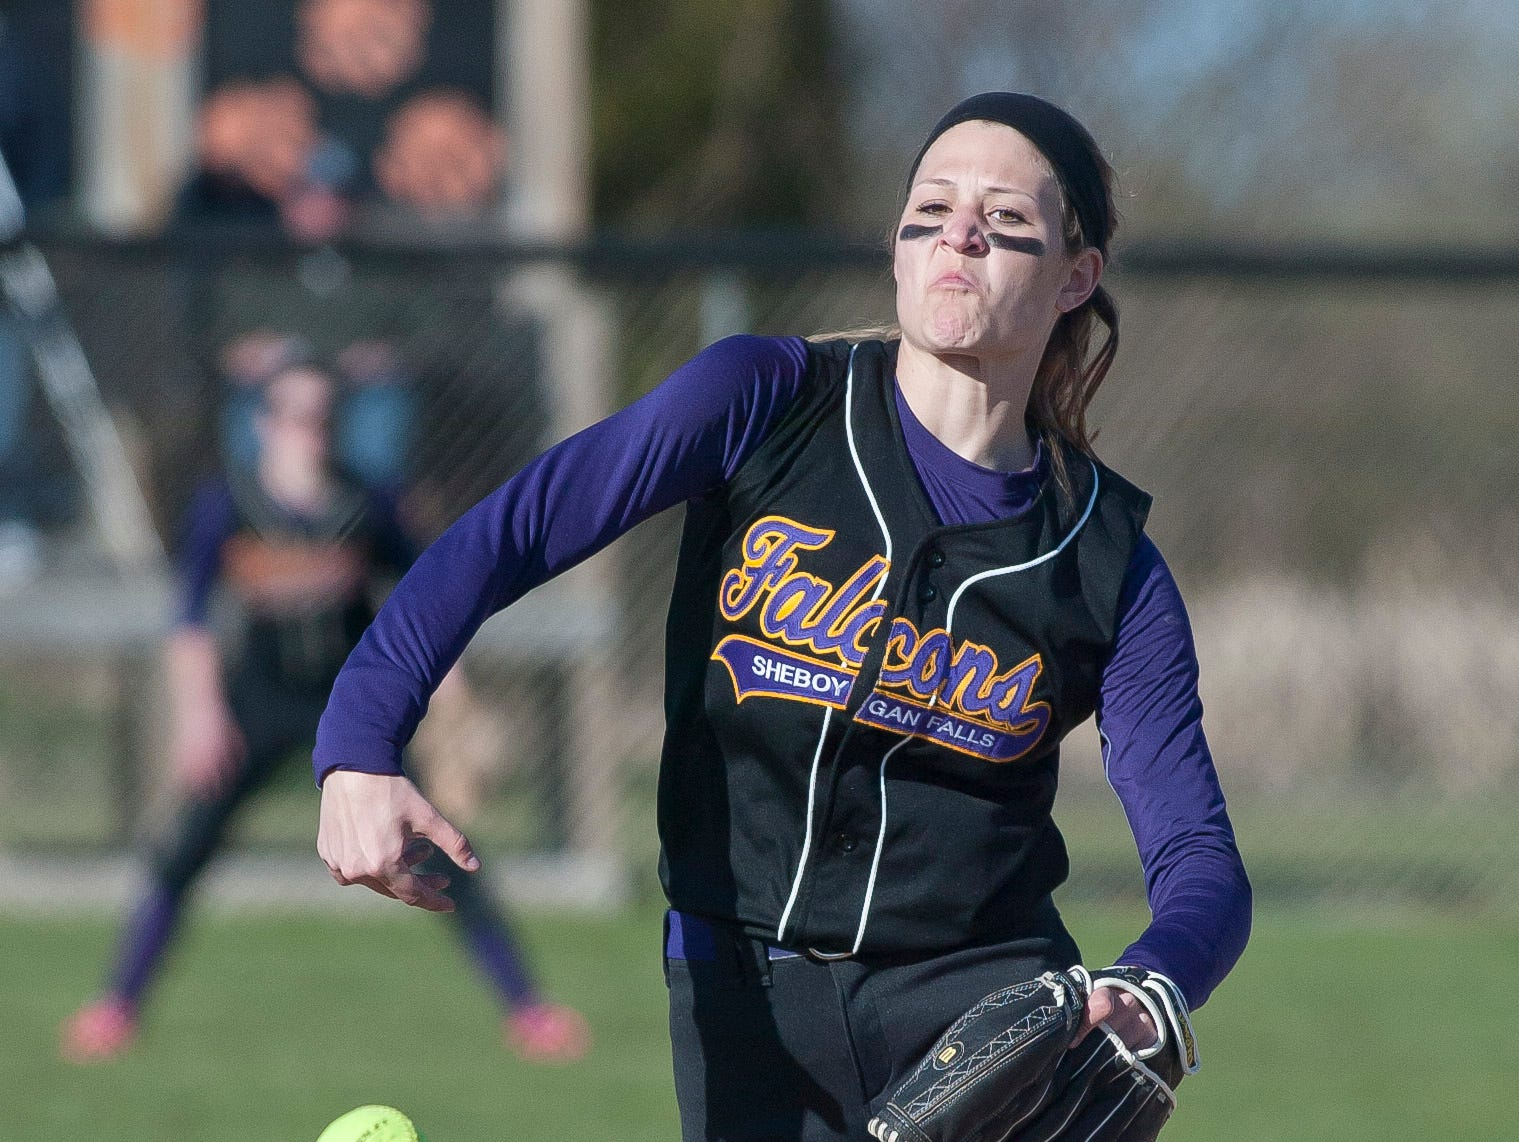 Sheboygan Falls' Autumn Horn (3) fires a pitch against Plymouth Thursday at Plymouth.